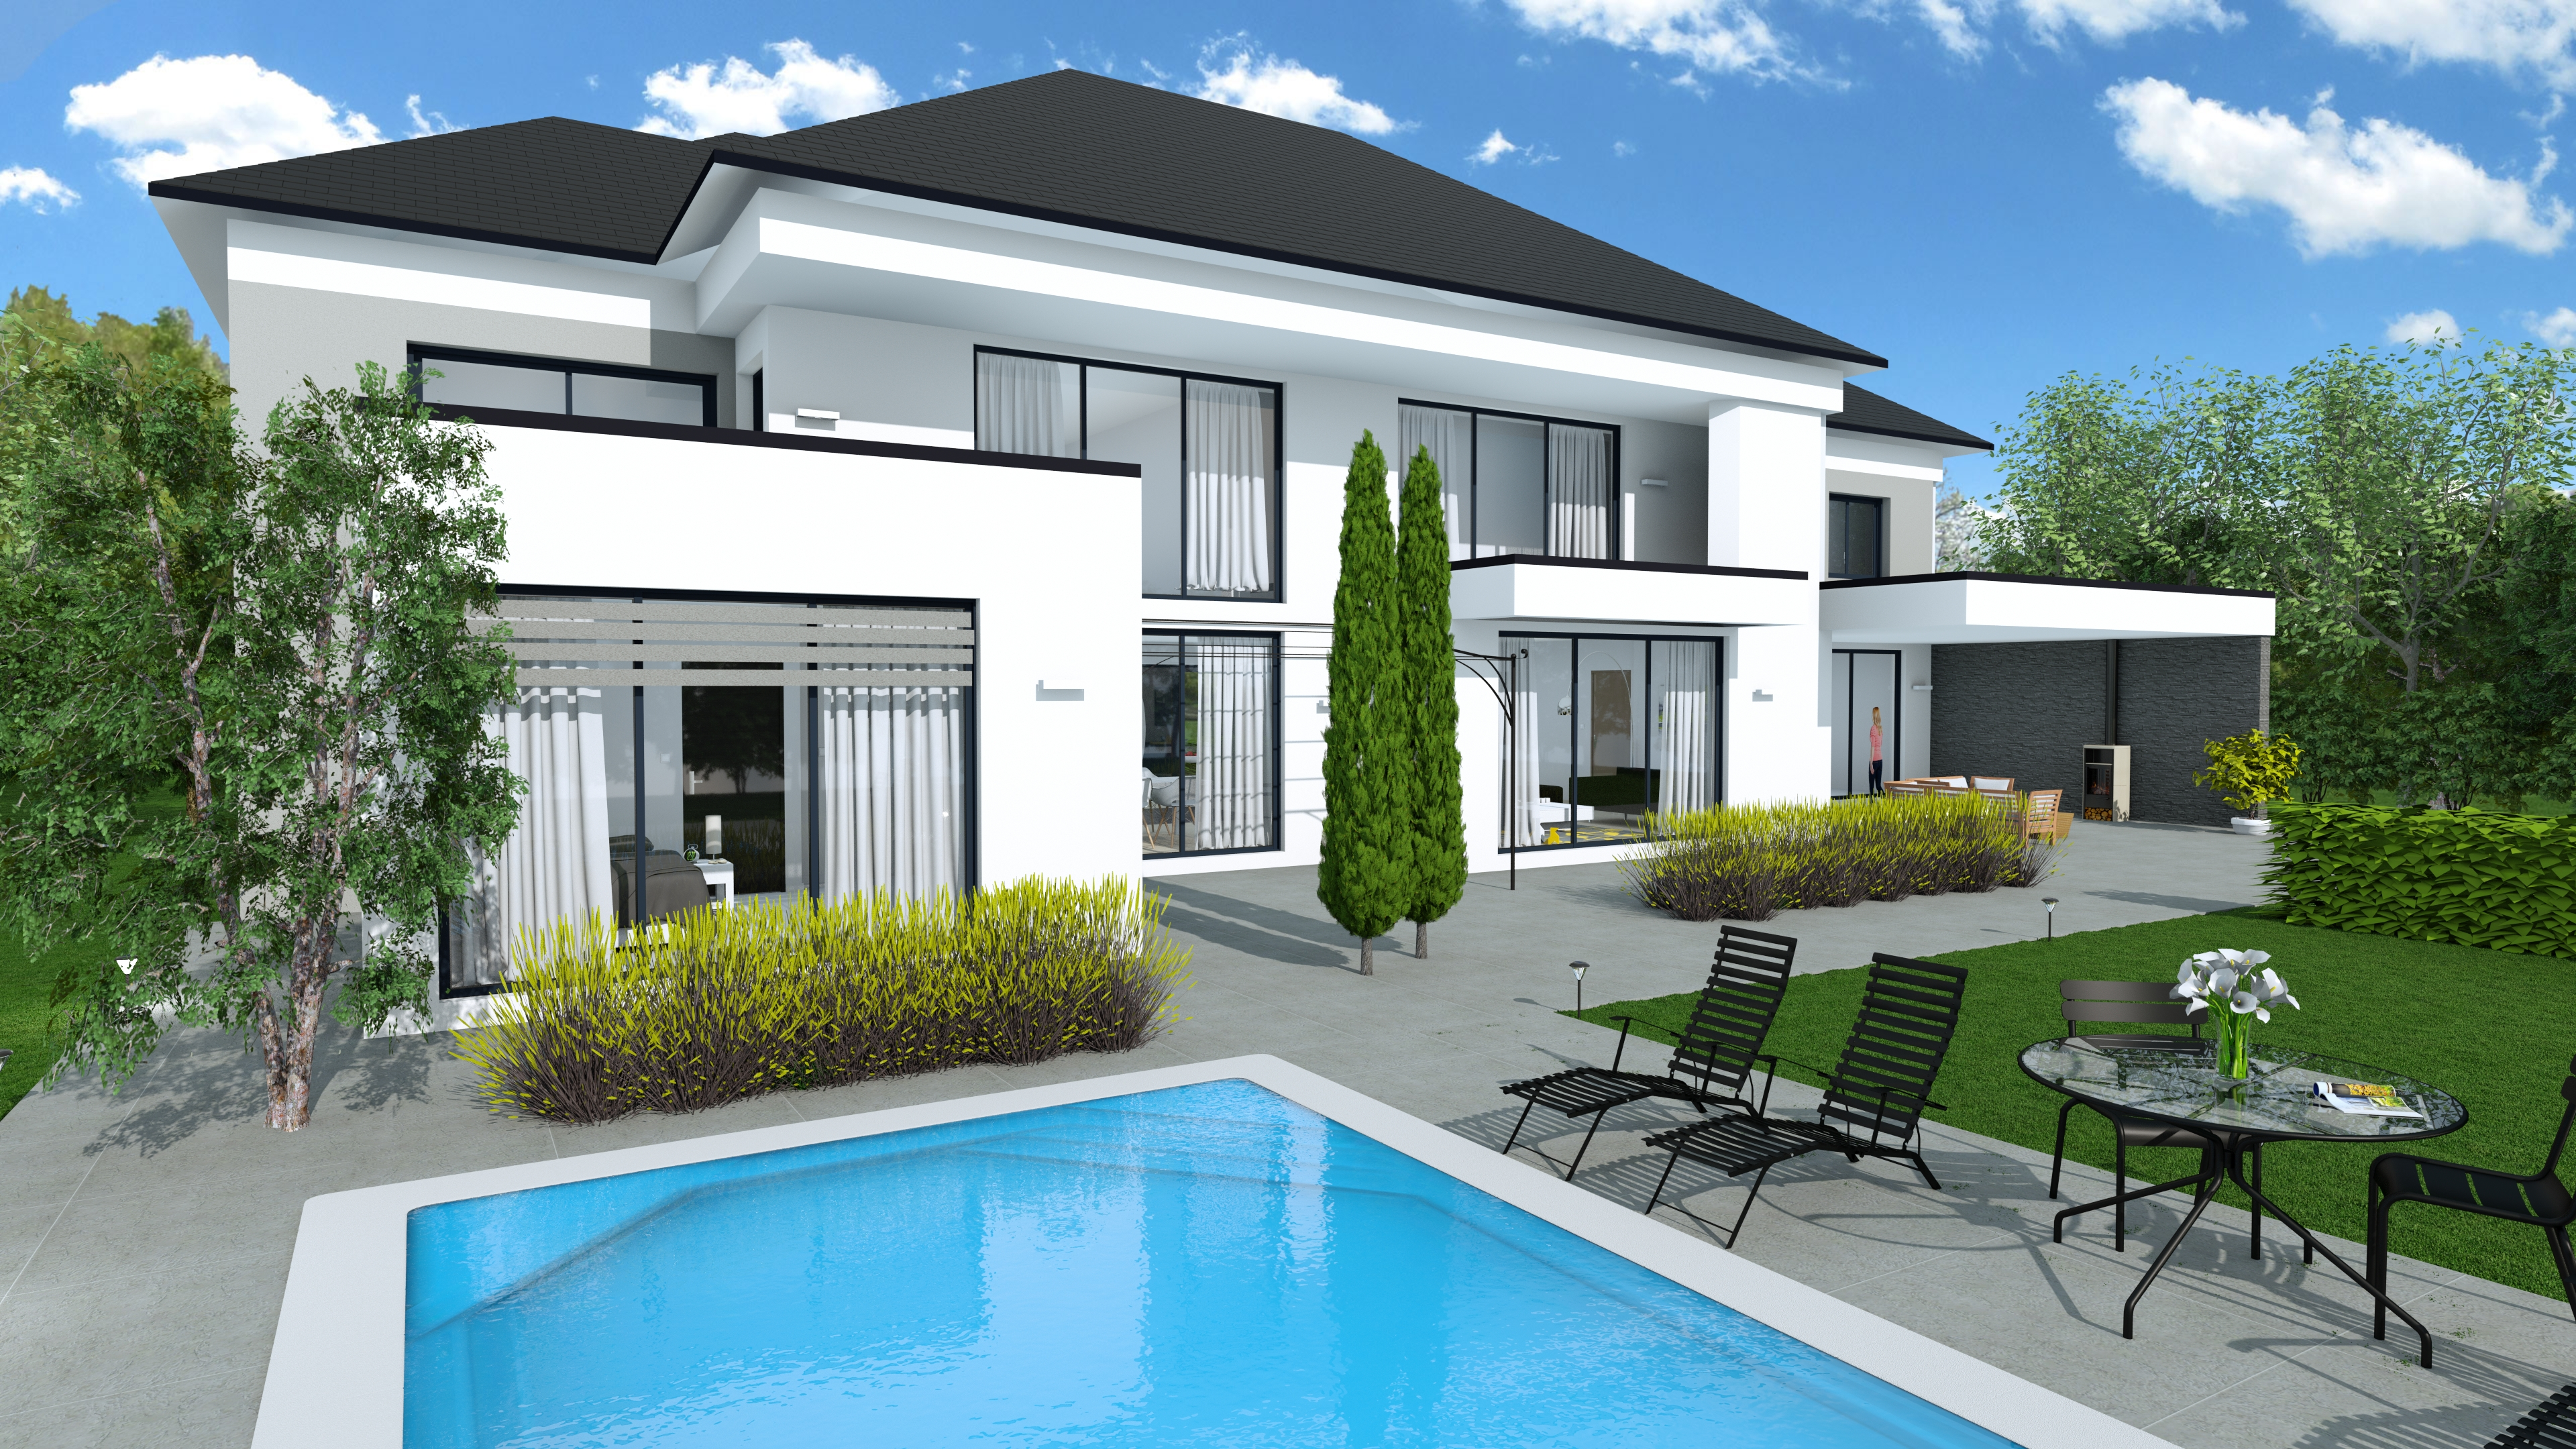 Garden planner design remodel exteriors in 3d with for Exterieur maison 3d